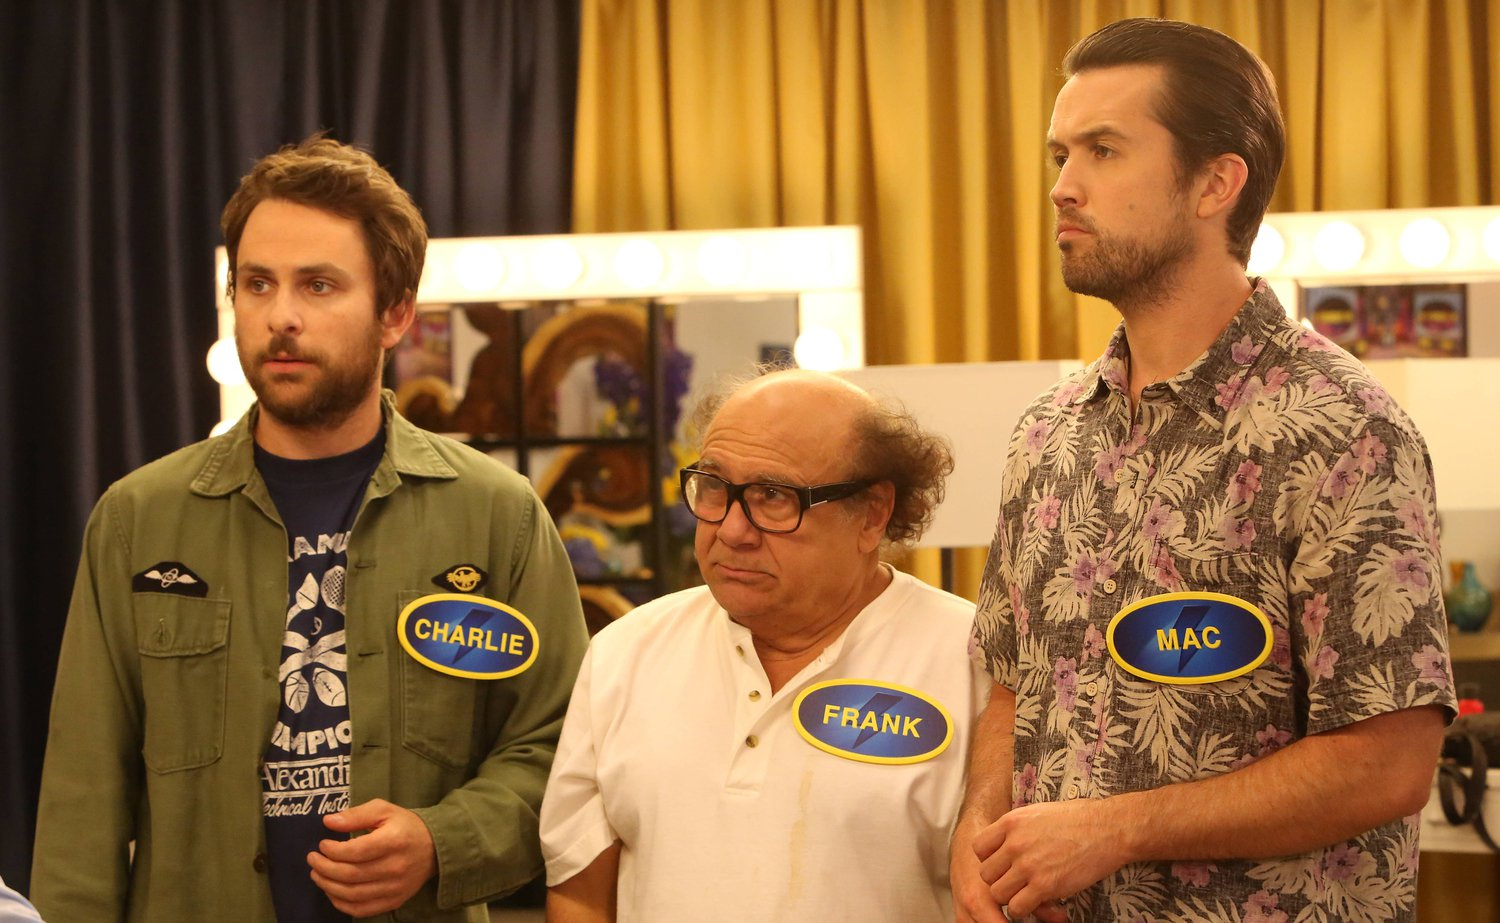 "IT'S ALWAYS SUNNY IN PHILADELPHIA ""The Gang Goes on Family Fight"" -- Episode 8 Airs Wednesday, March 4, 10:00 PM e/p) Pictured: (L-R) Charlie Day as Charlie Kelly, Danny DeVito as Frank Reynolds, Rob McElhenney as Mac. CR: Patrick McElhenney/FX"